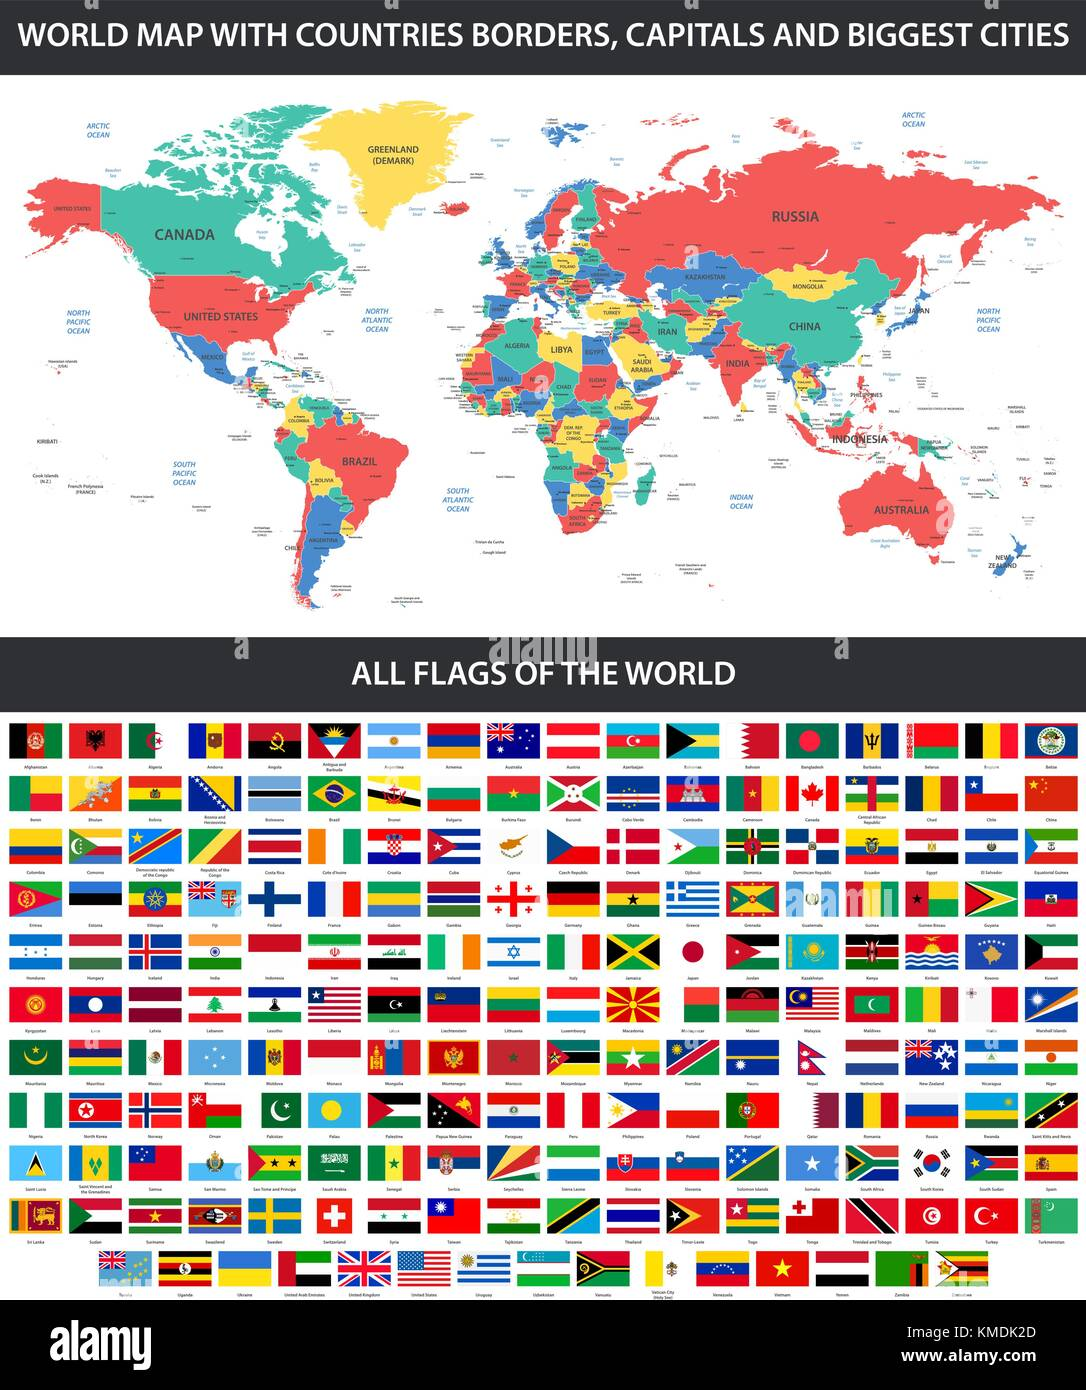 All flags of the world in alphabetical order and detailed world map all flags of the world in alphabetical order and detailed world map with borders countries large cities gumiabroncs Choice Image